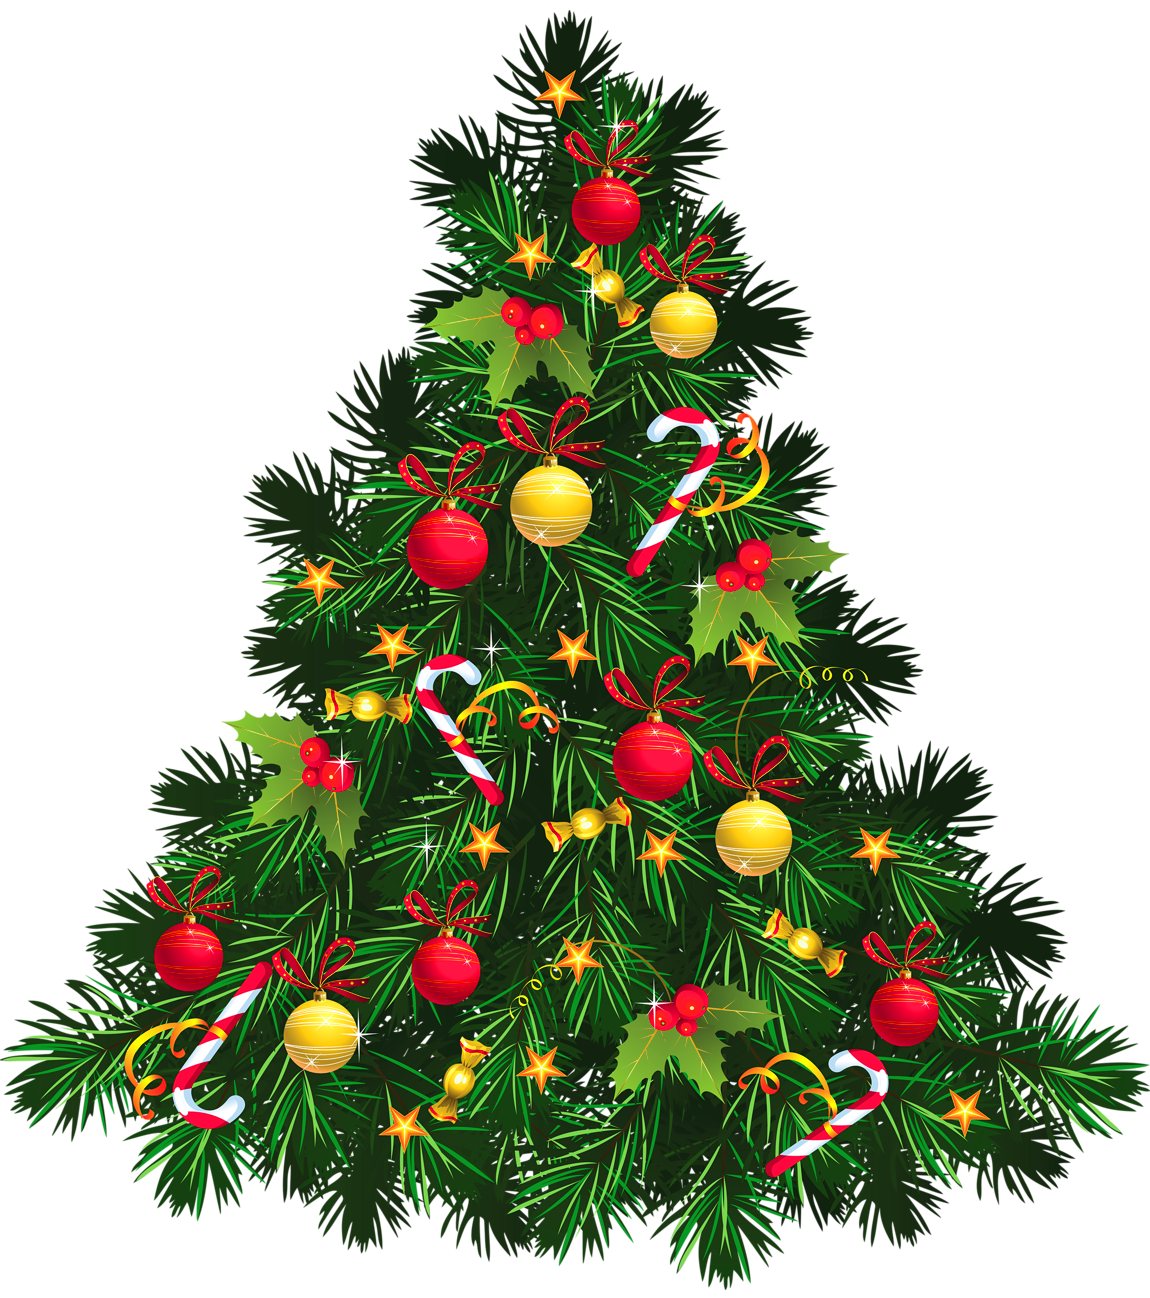 transparent christmas tree with ornaments png picture. Black Bedroom Furniture Sets. Home Design Ideas